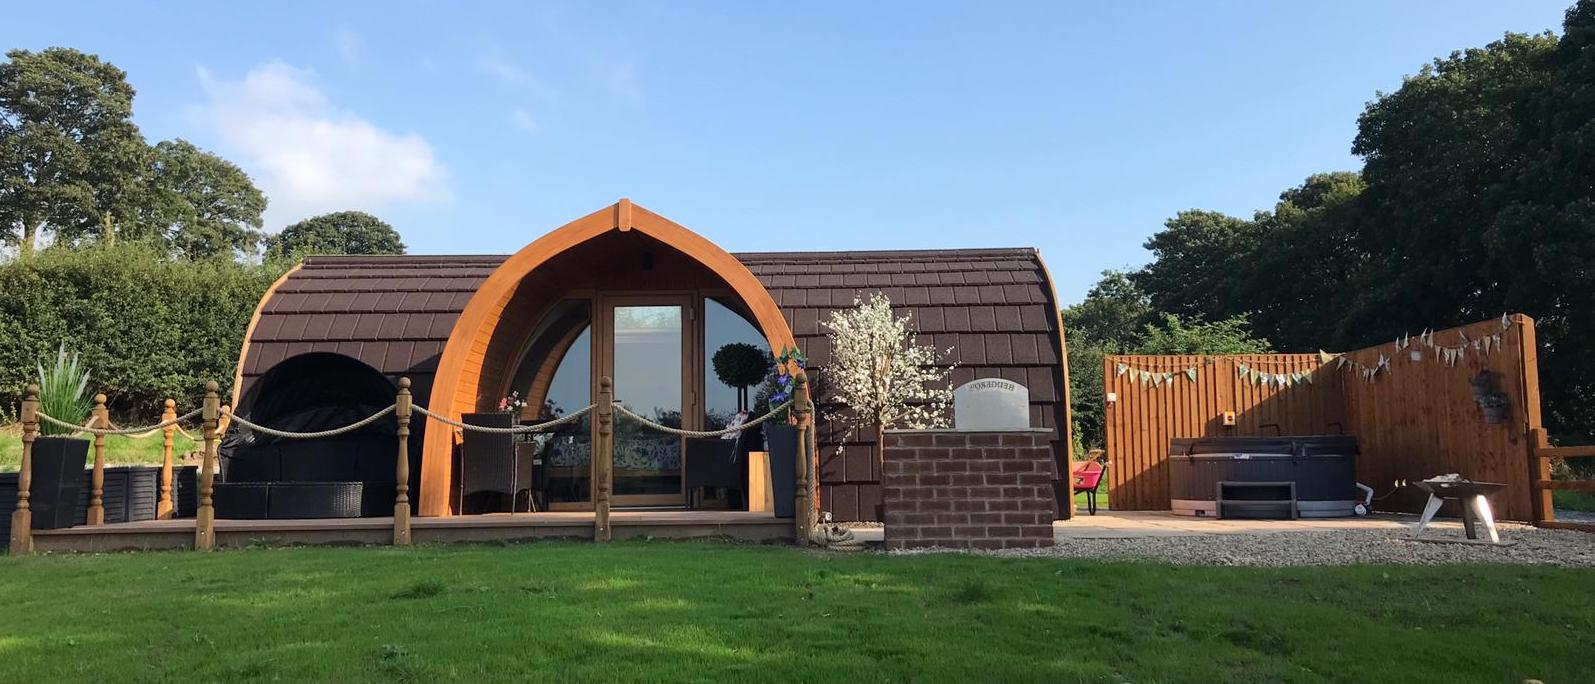 Glamping in The Forest of Bowland holidays at Cool Places